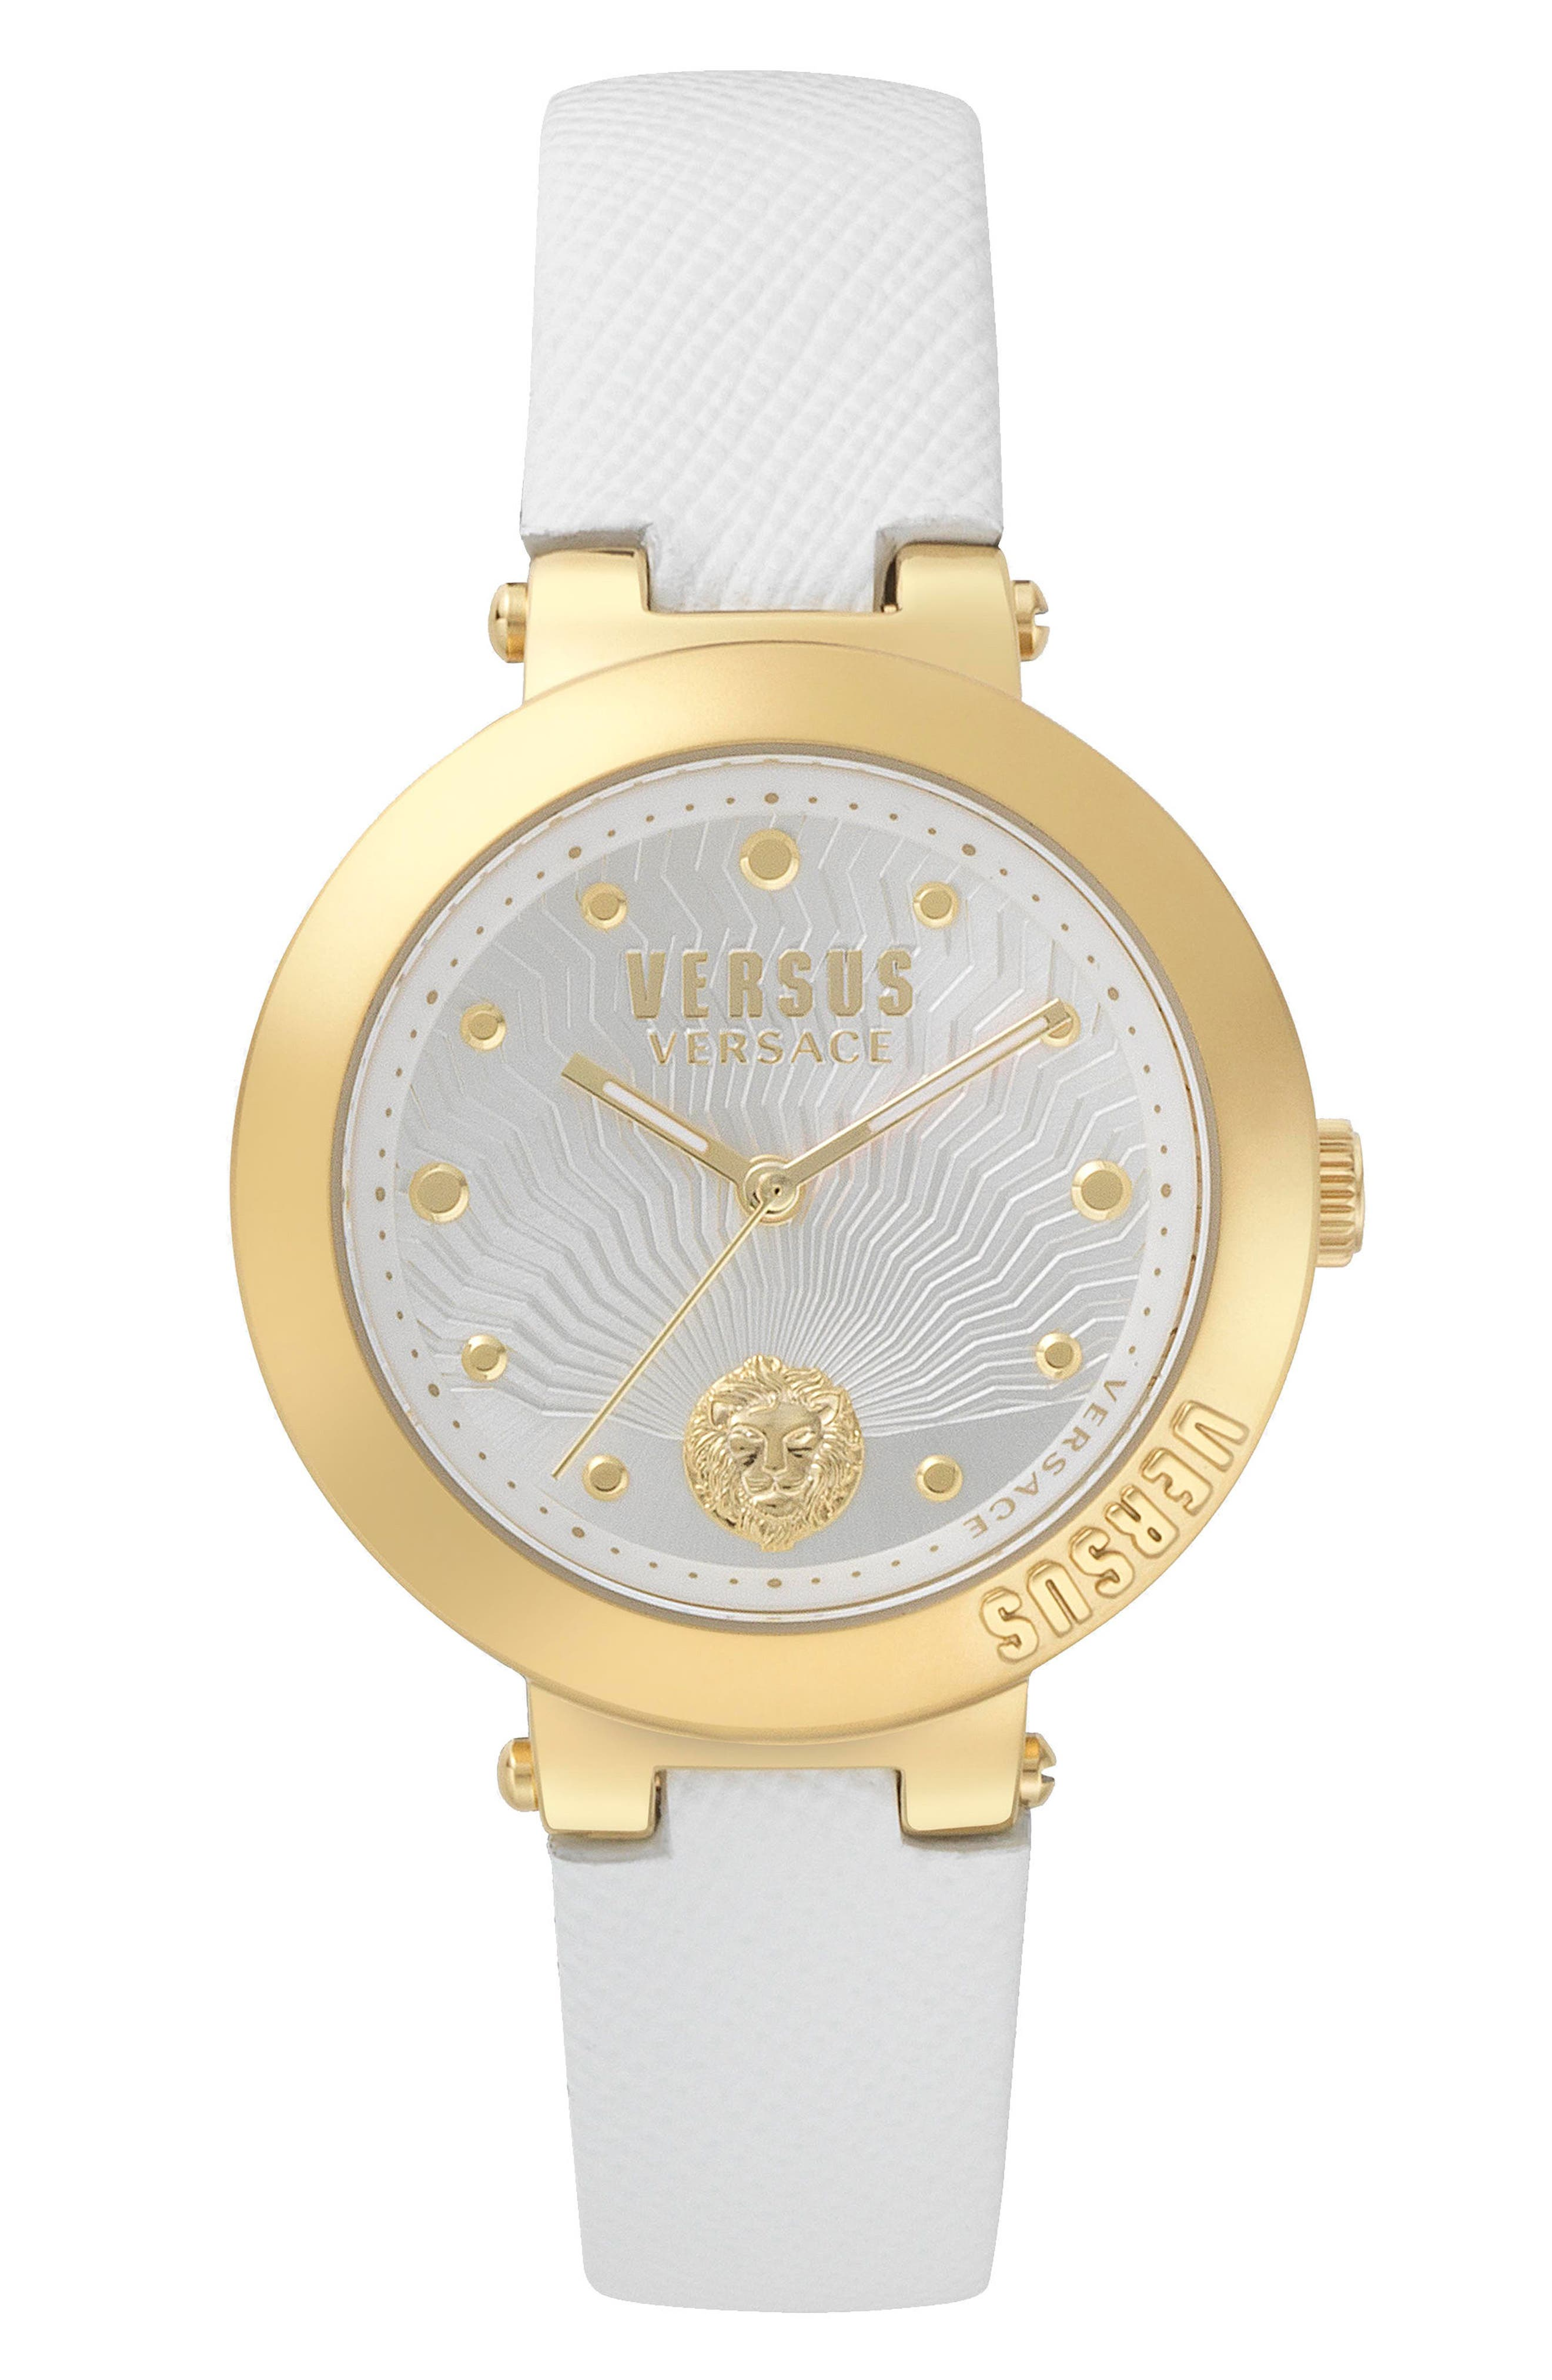 VERSUS by Versace Lantau Island Leather Strap Watch, 36mm,                         Main,                         color, White/ Gold